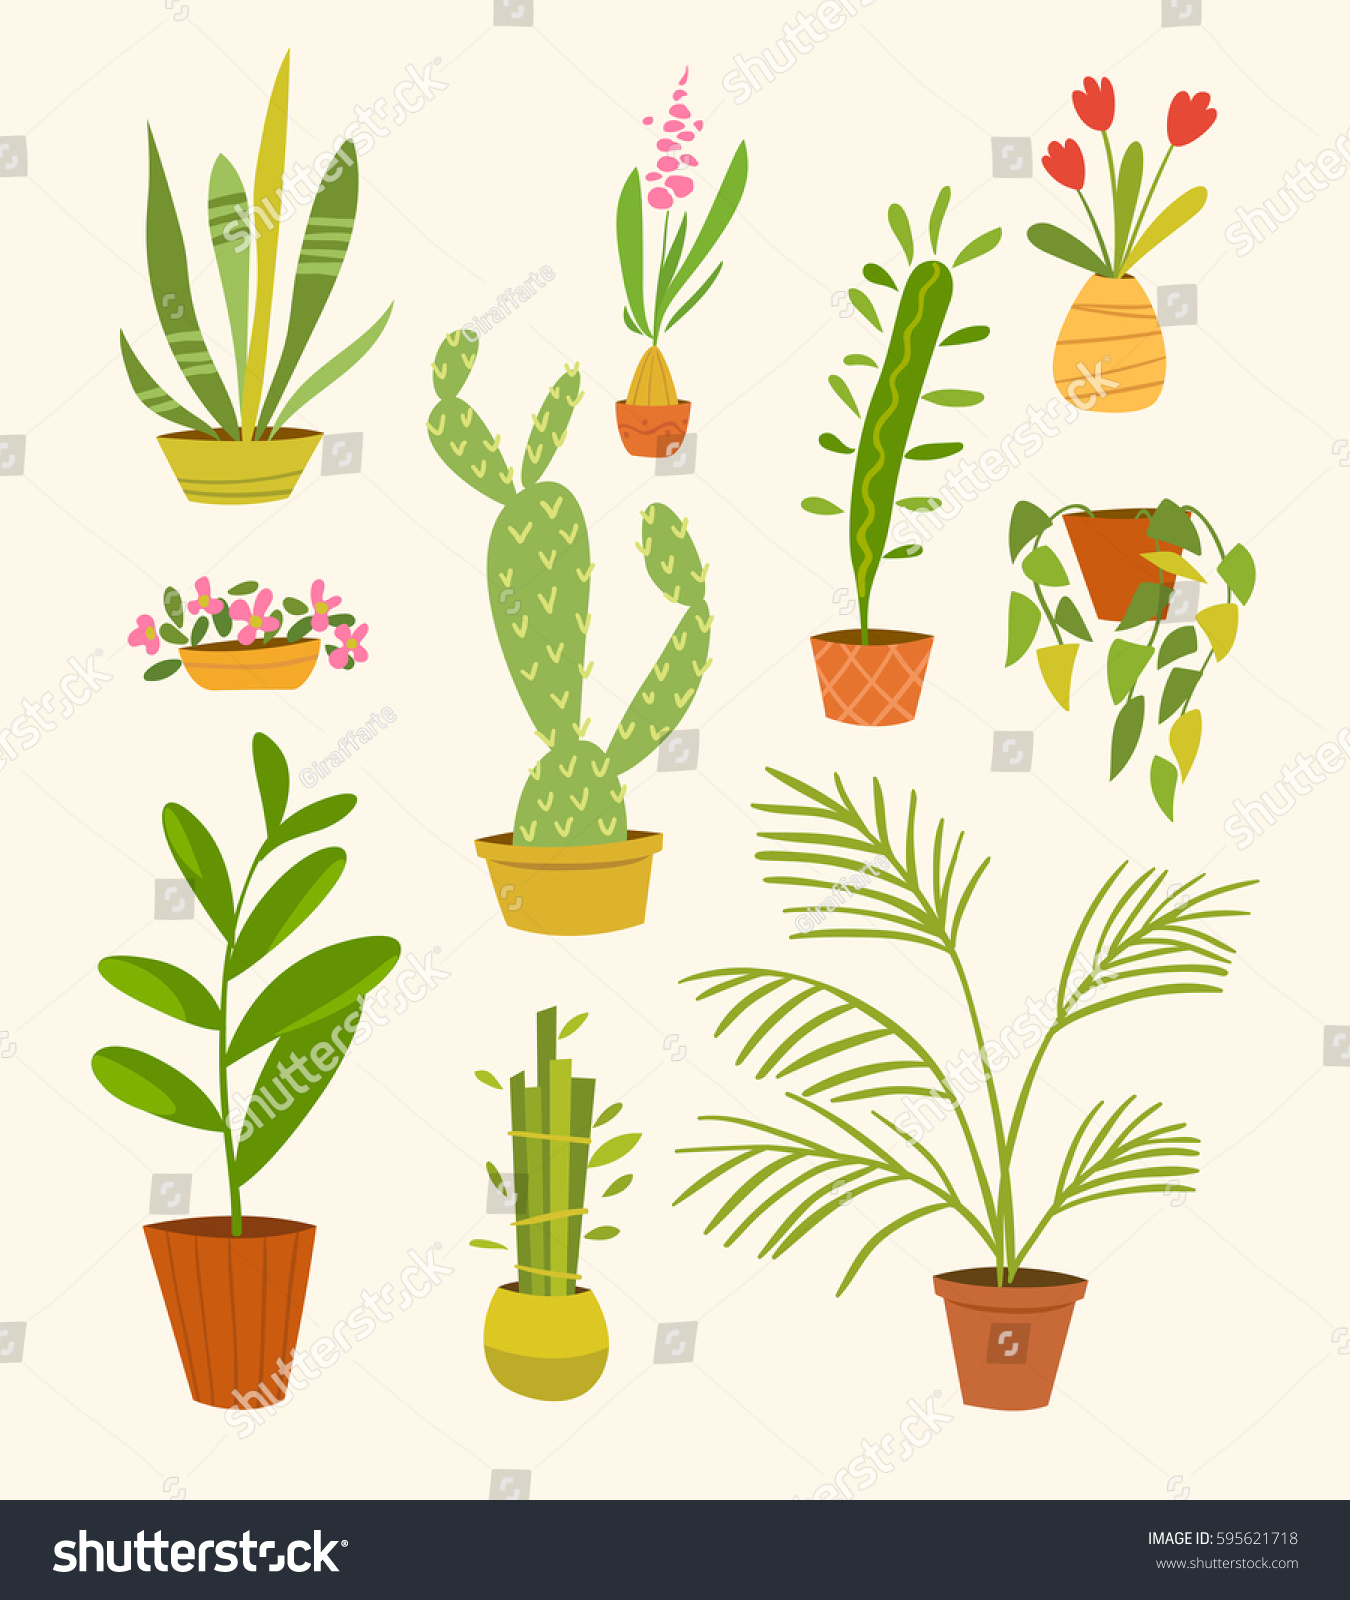 Vector set different indoor plants pots stock vector 595621718 shutterstock - Home plants types ...